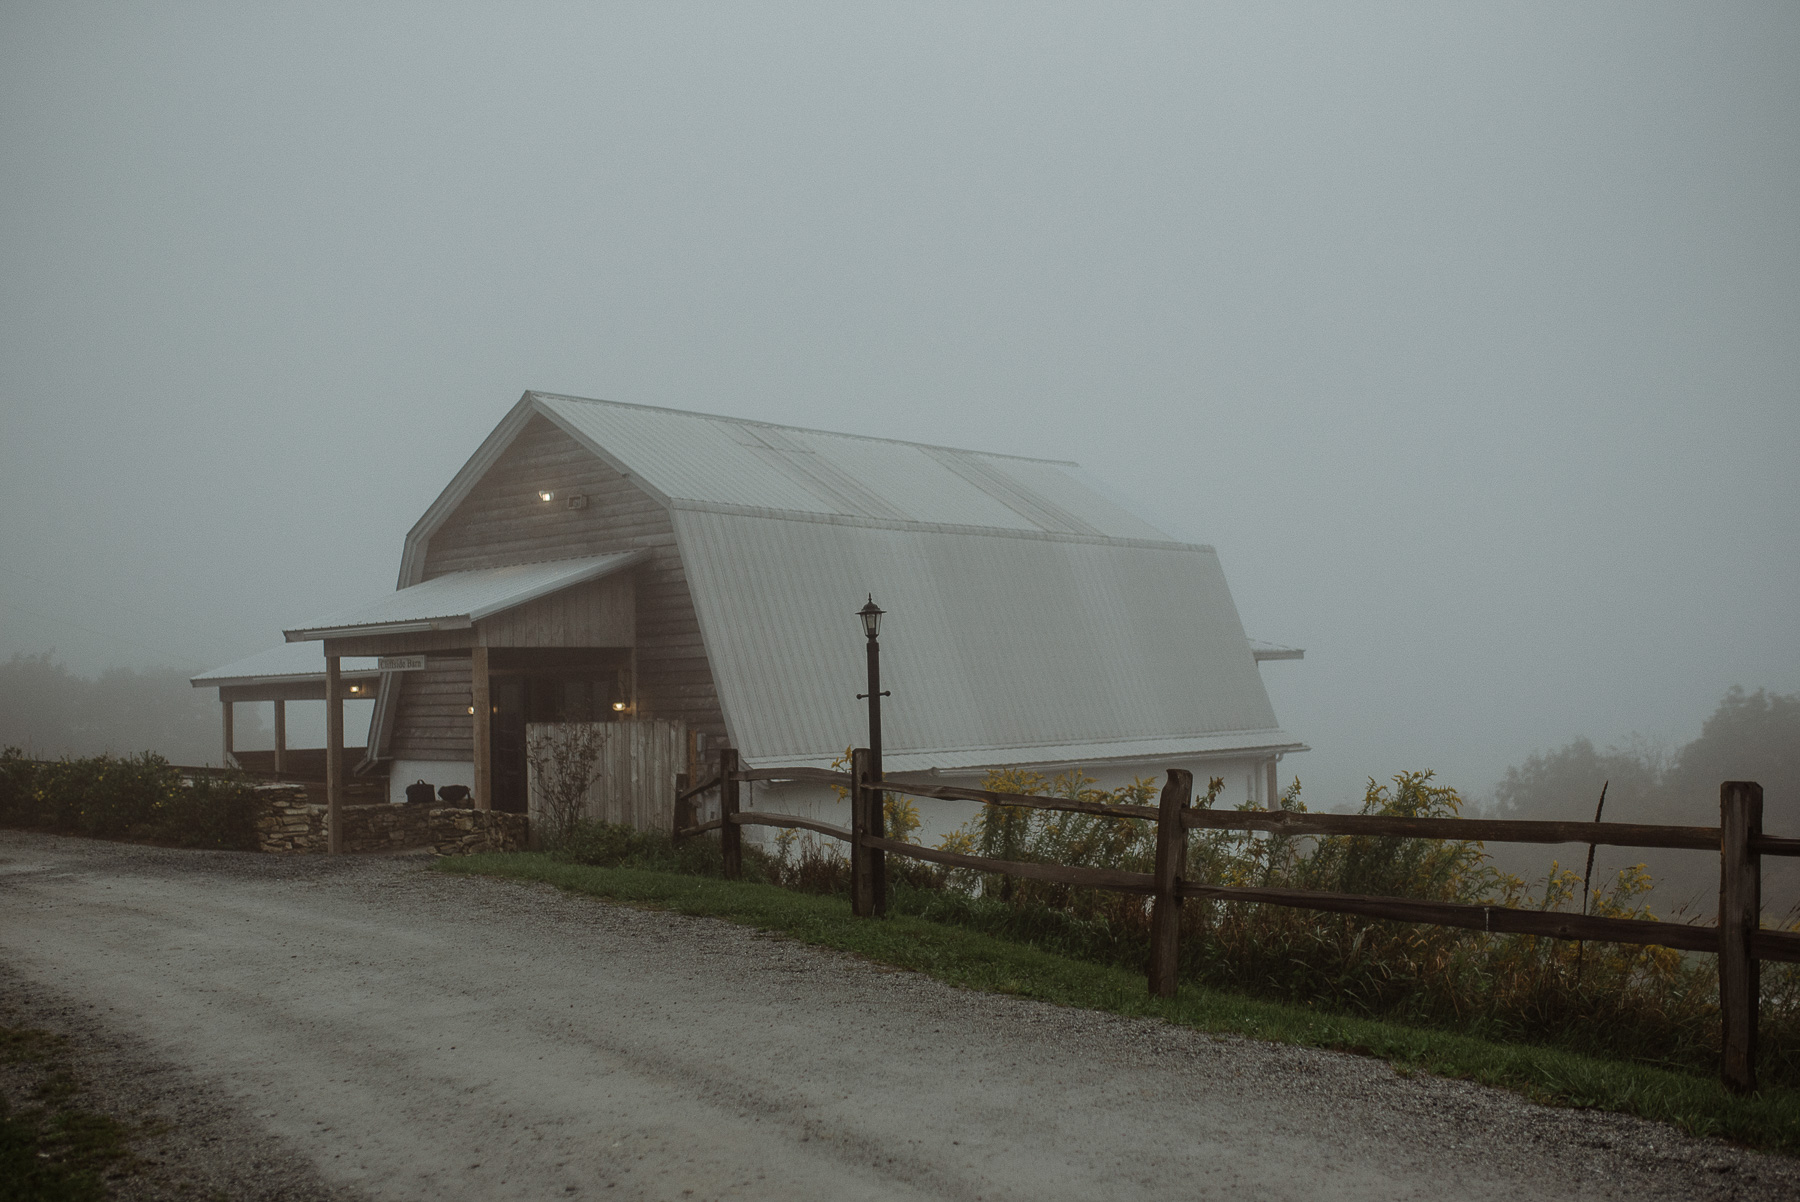 enowen-wedding-photography-overlook-barn-hurricane-wedding